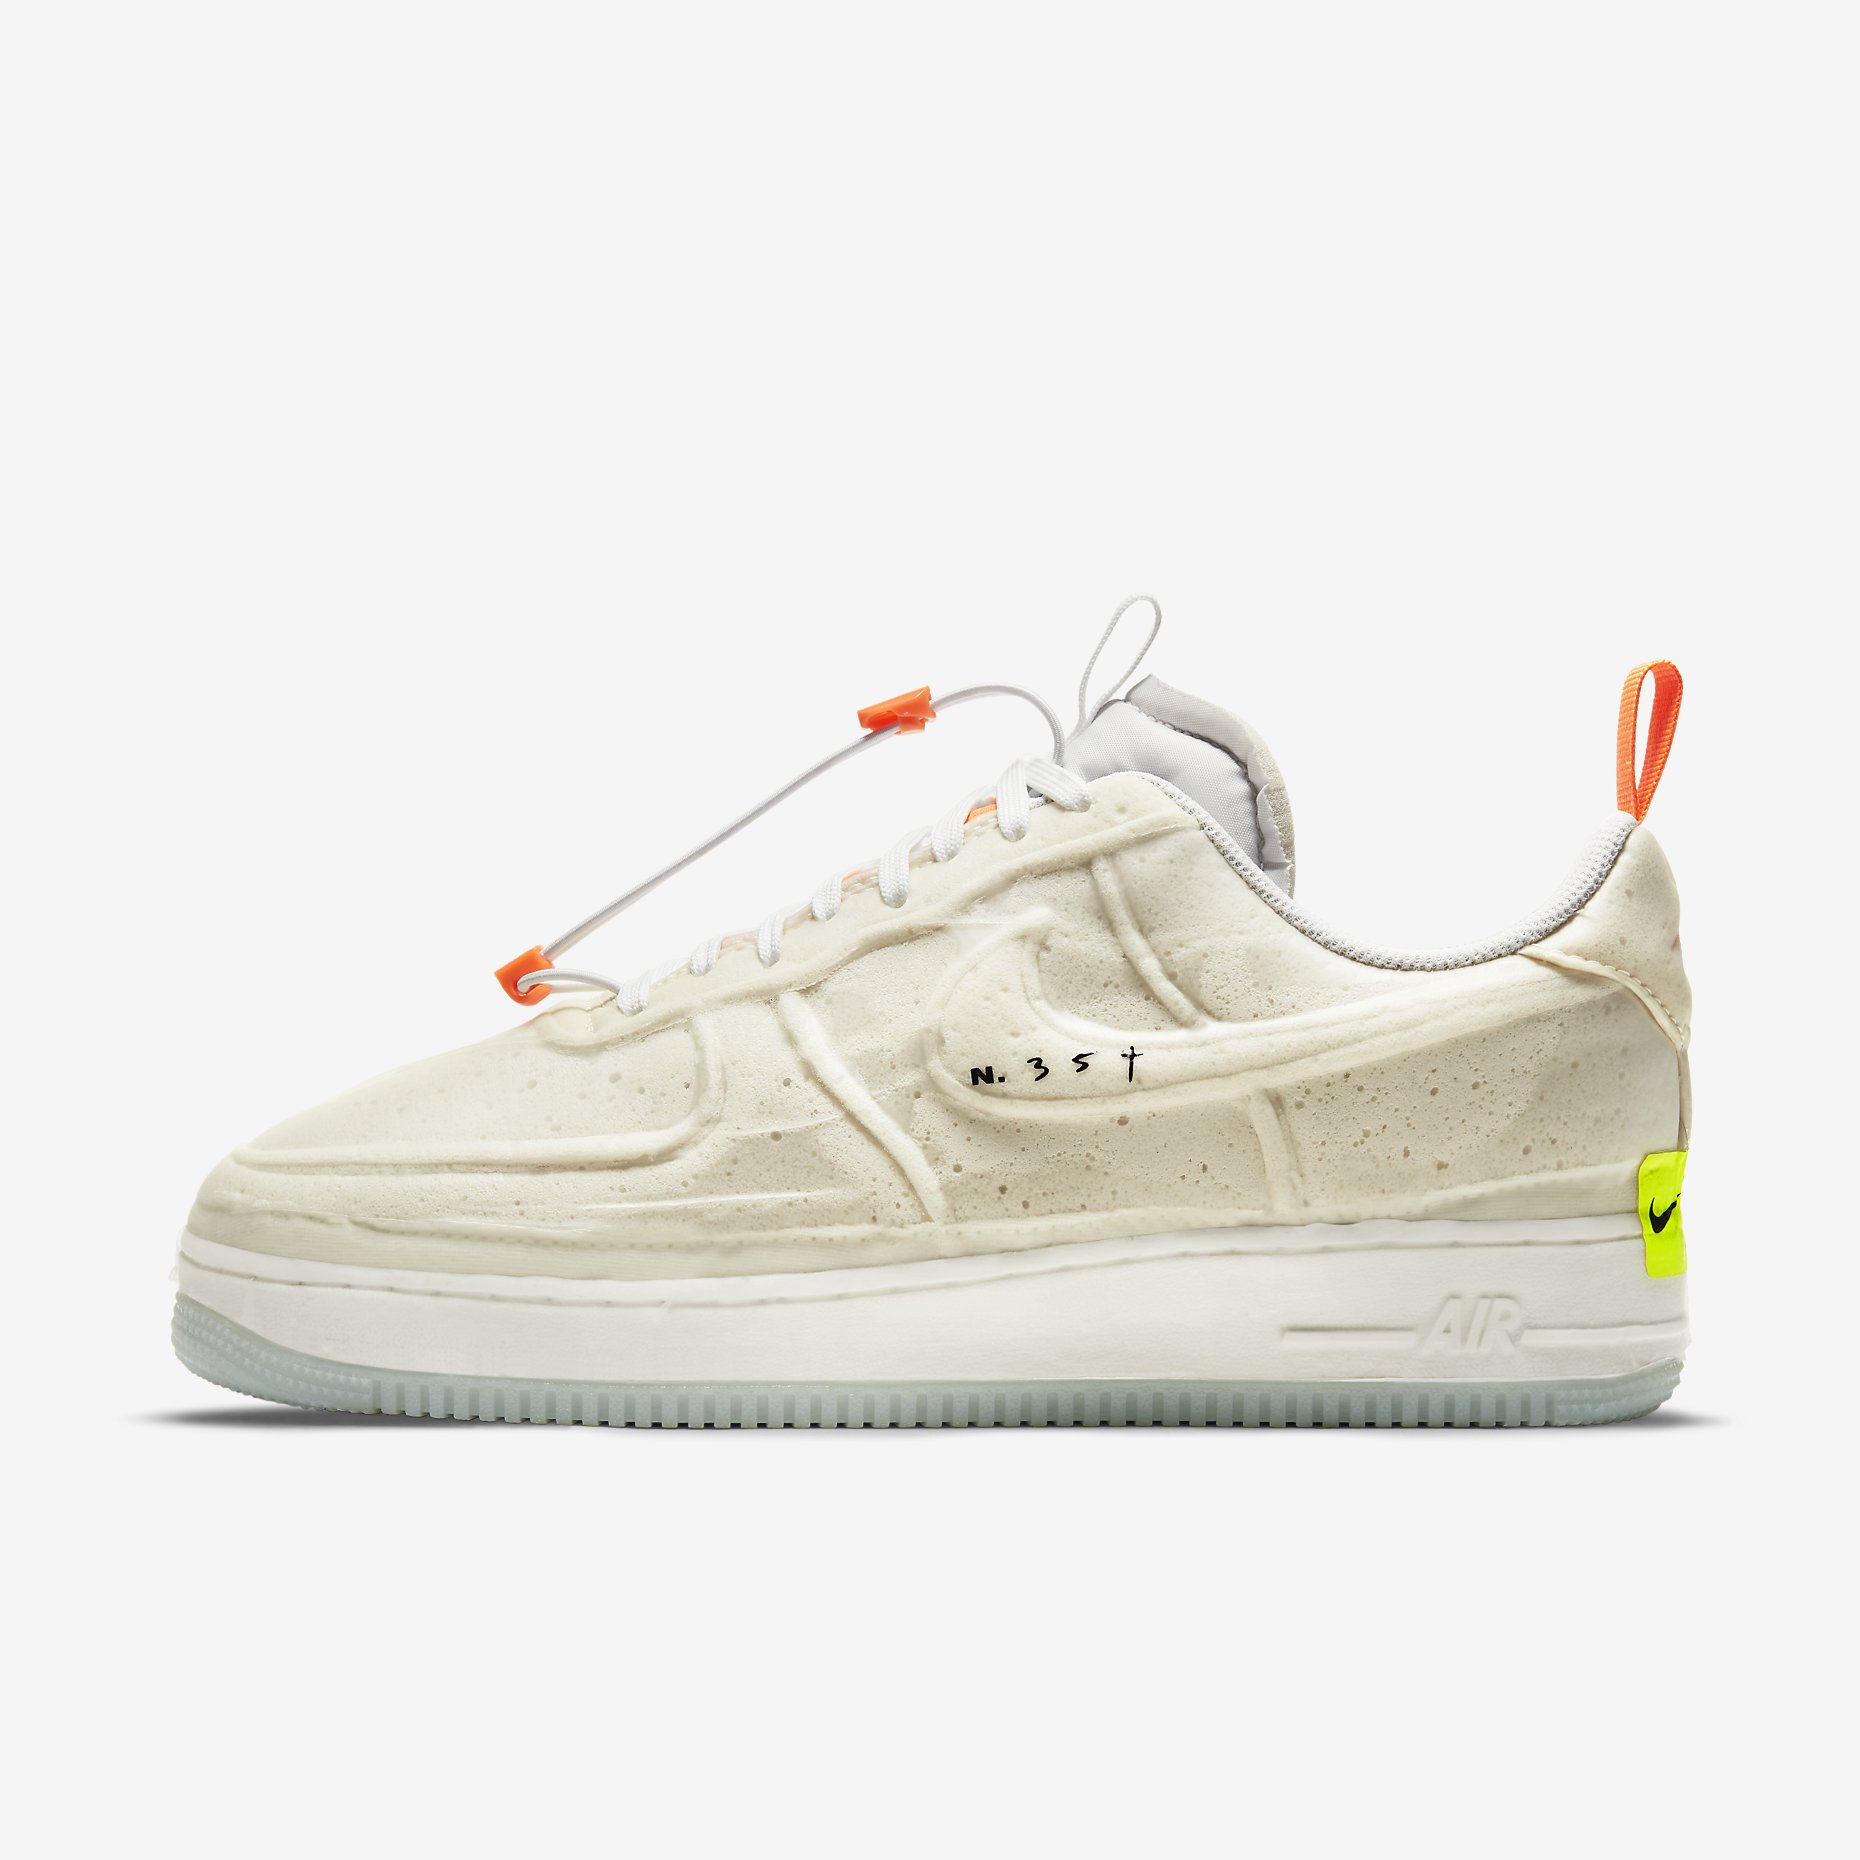 Nike Air Force 1 Experimental 'Sail'}